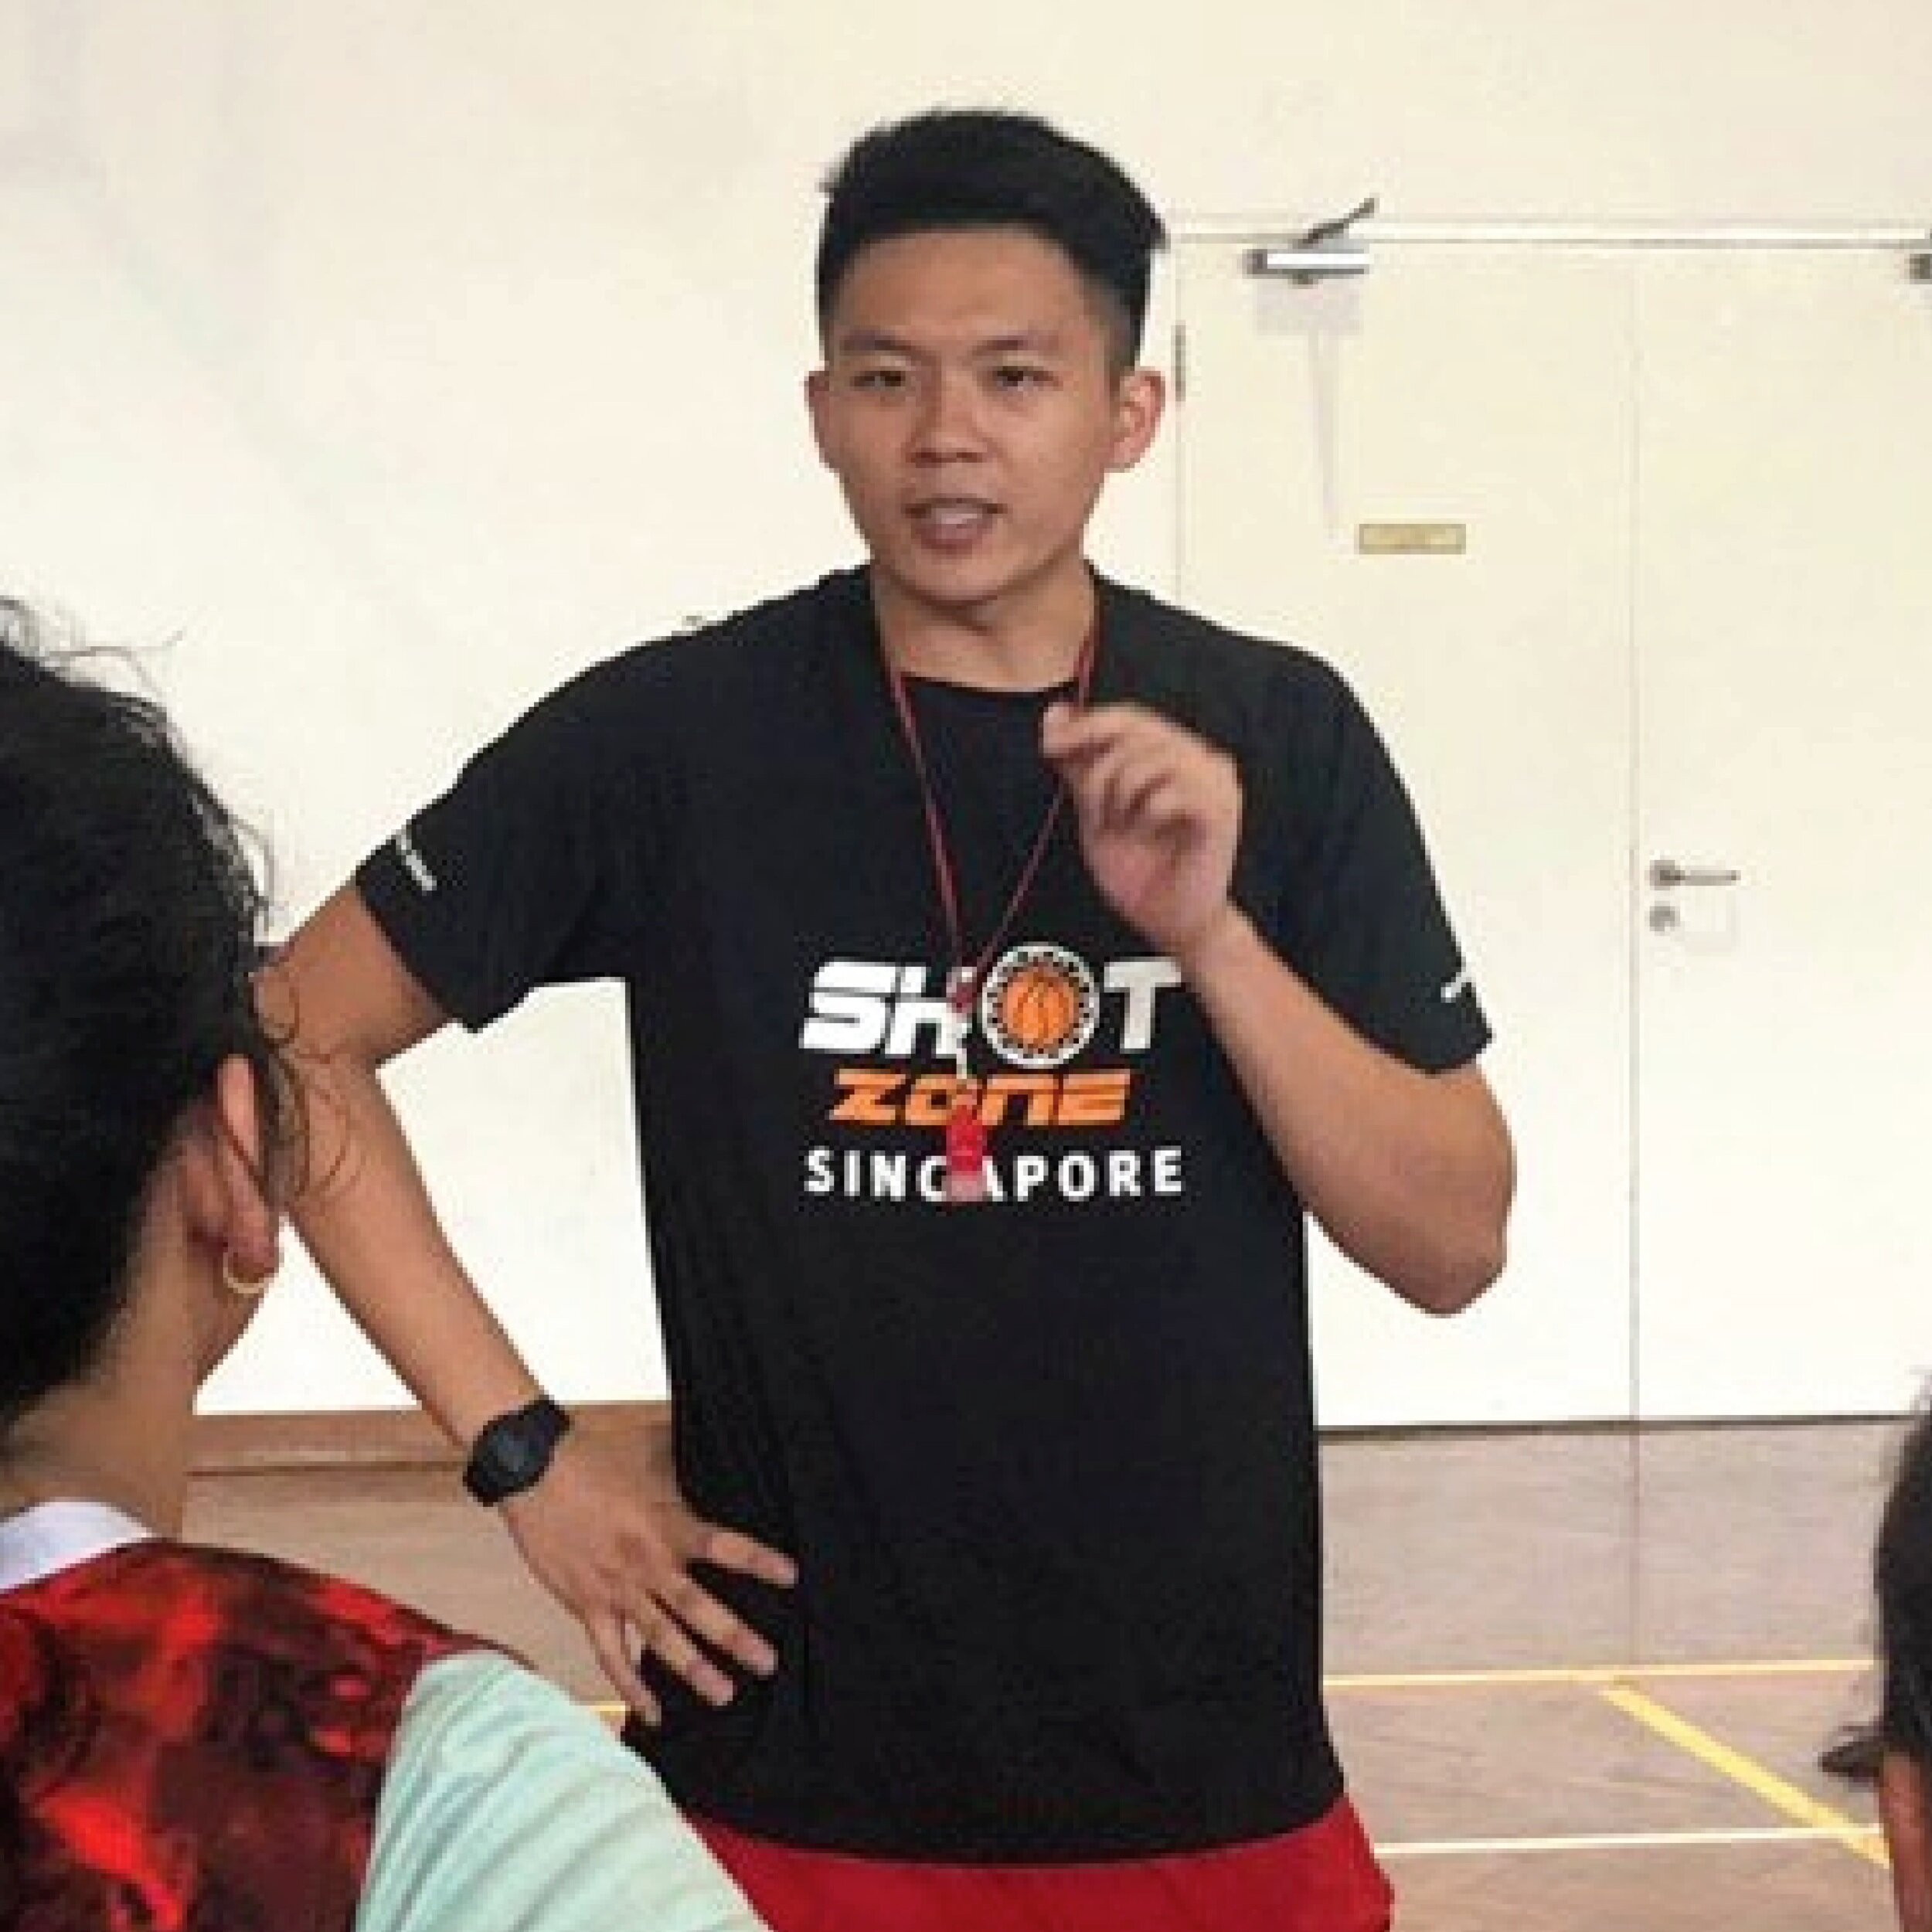 LIM SHENGYU - Current Teams: Academy Coach, AHS C Boys Head Coach, Stingers U11, U13 Boys, U18 Girls.Playing Career: - 12 years in S'pore National Team ('07 to '18). - SEA Games Bronze in '13 and '15.- 4 years with Singapore Slingers.- ABL 3-point Champion 2013.Coaching Experience: - 10 years. - CBL '19 U13D3 Boys 1st.- North Zone '11 C Div 3rd.- East Zone '18 C Div 3rd.Read more